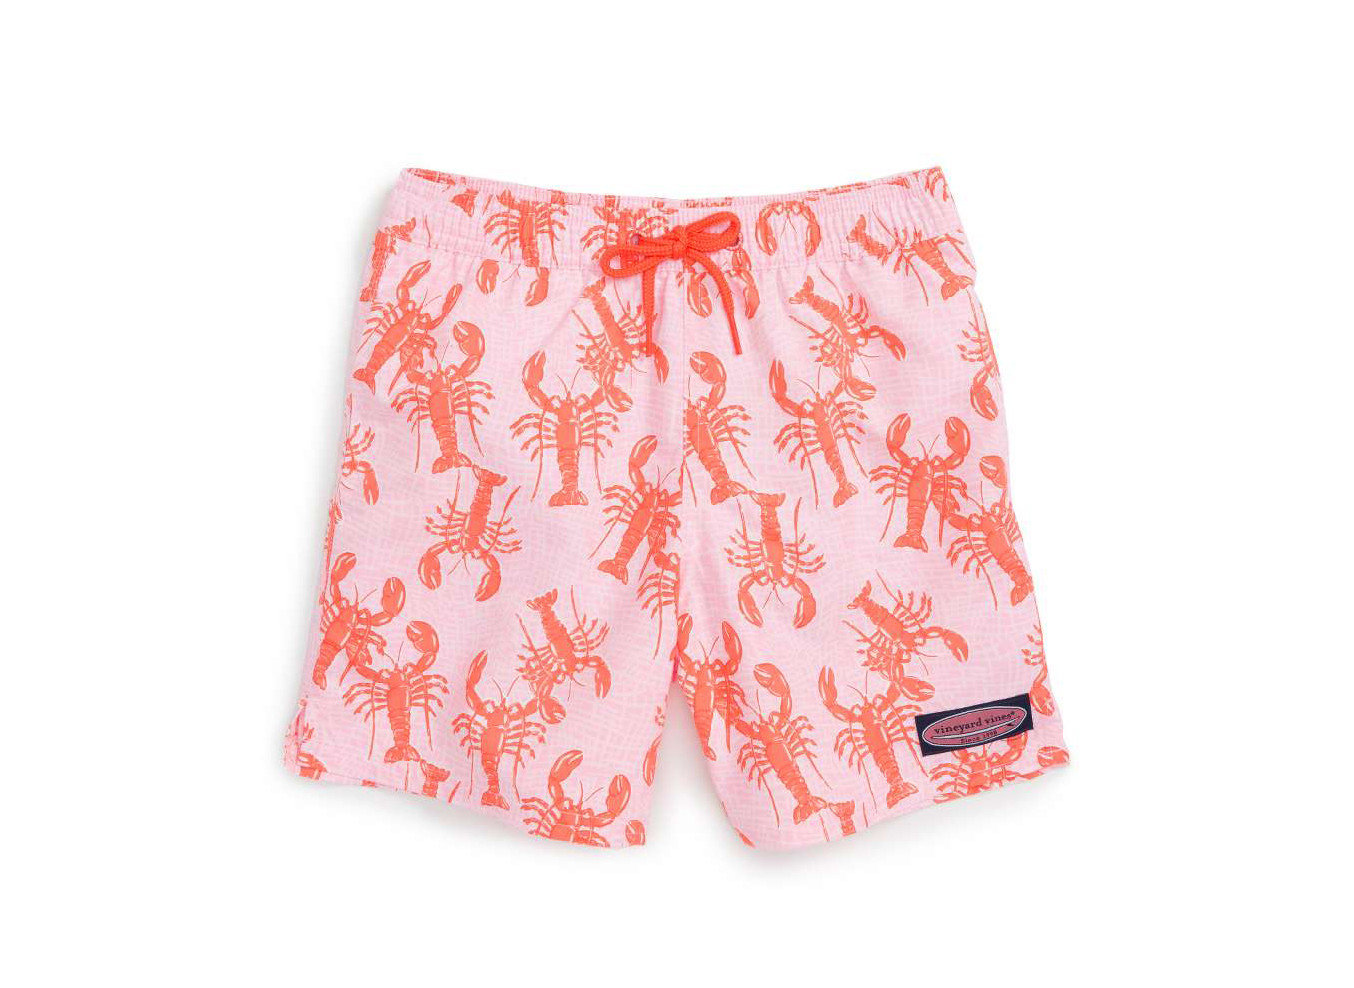 Style + Design clothing active shorts trunks shorts underpants product swimsuit bottom peach trouser